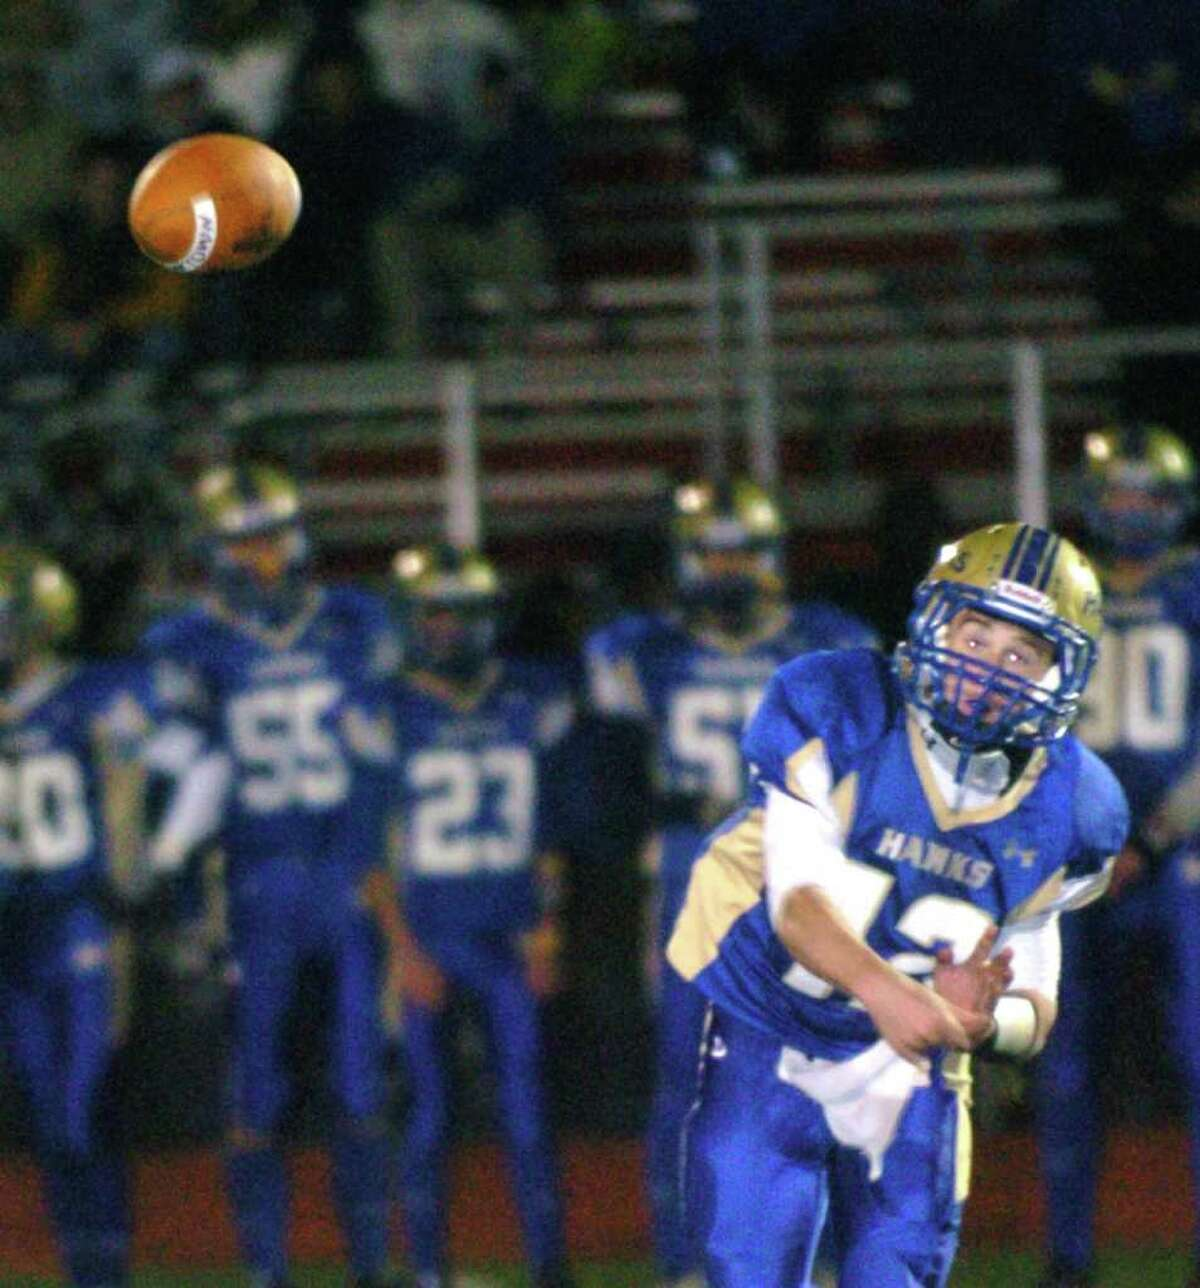 Newtown's 12, Dan Hebert, makes a pass during the football game against Bunnell at Southbury Oct, 22, 2010.